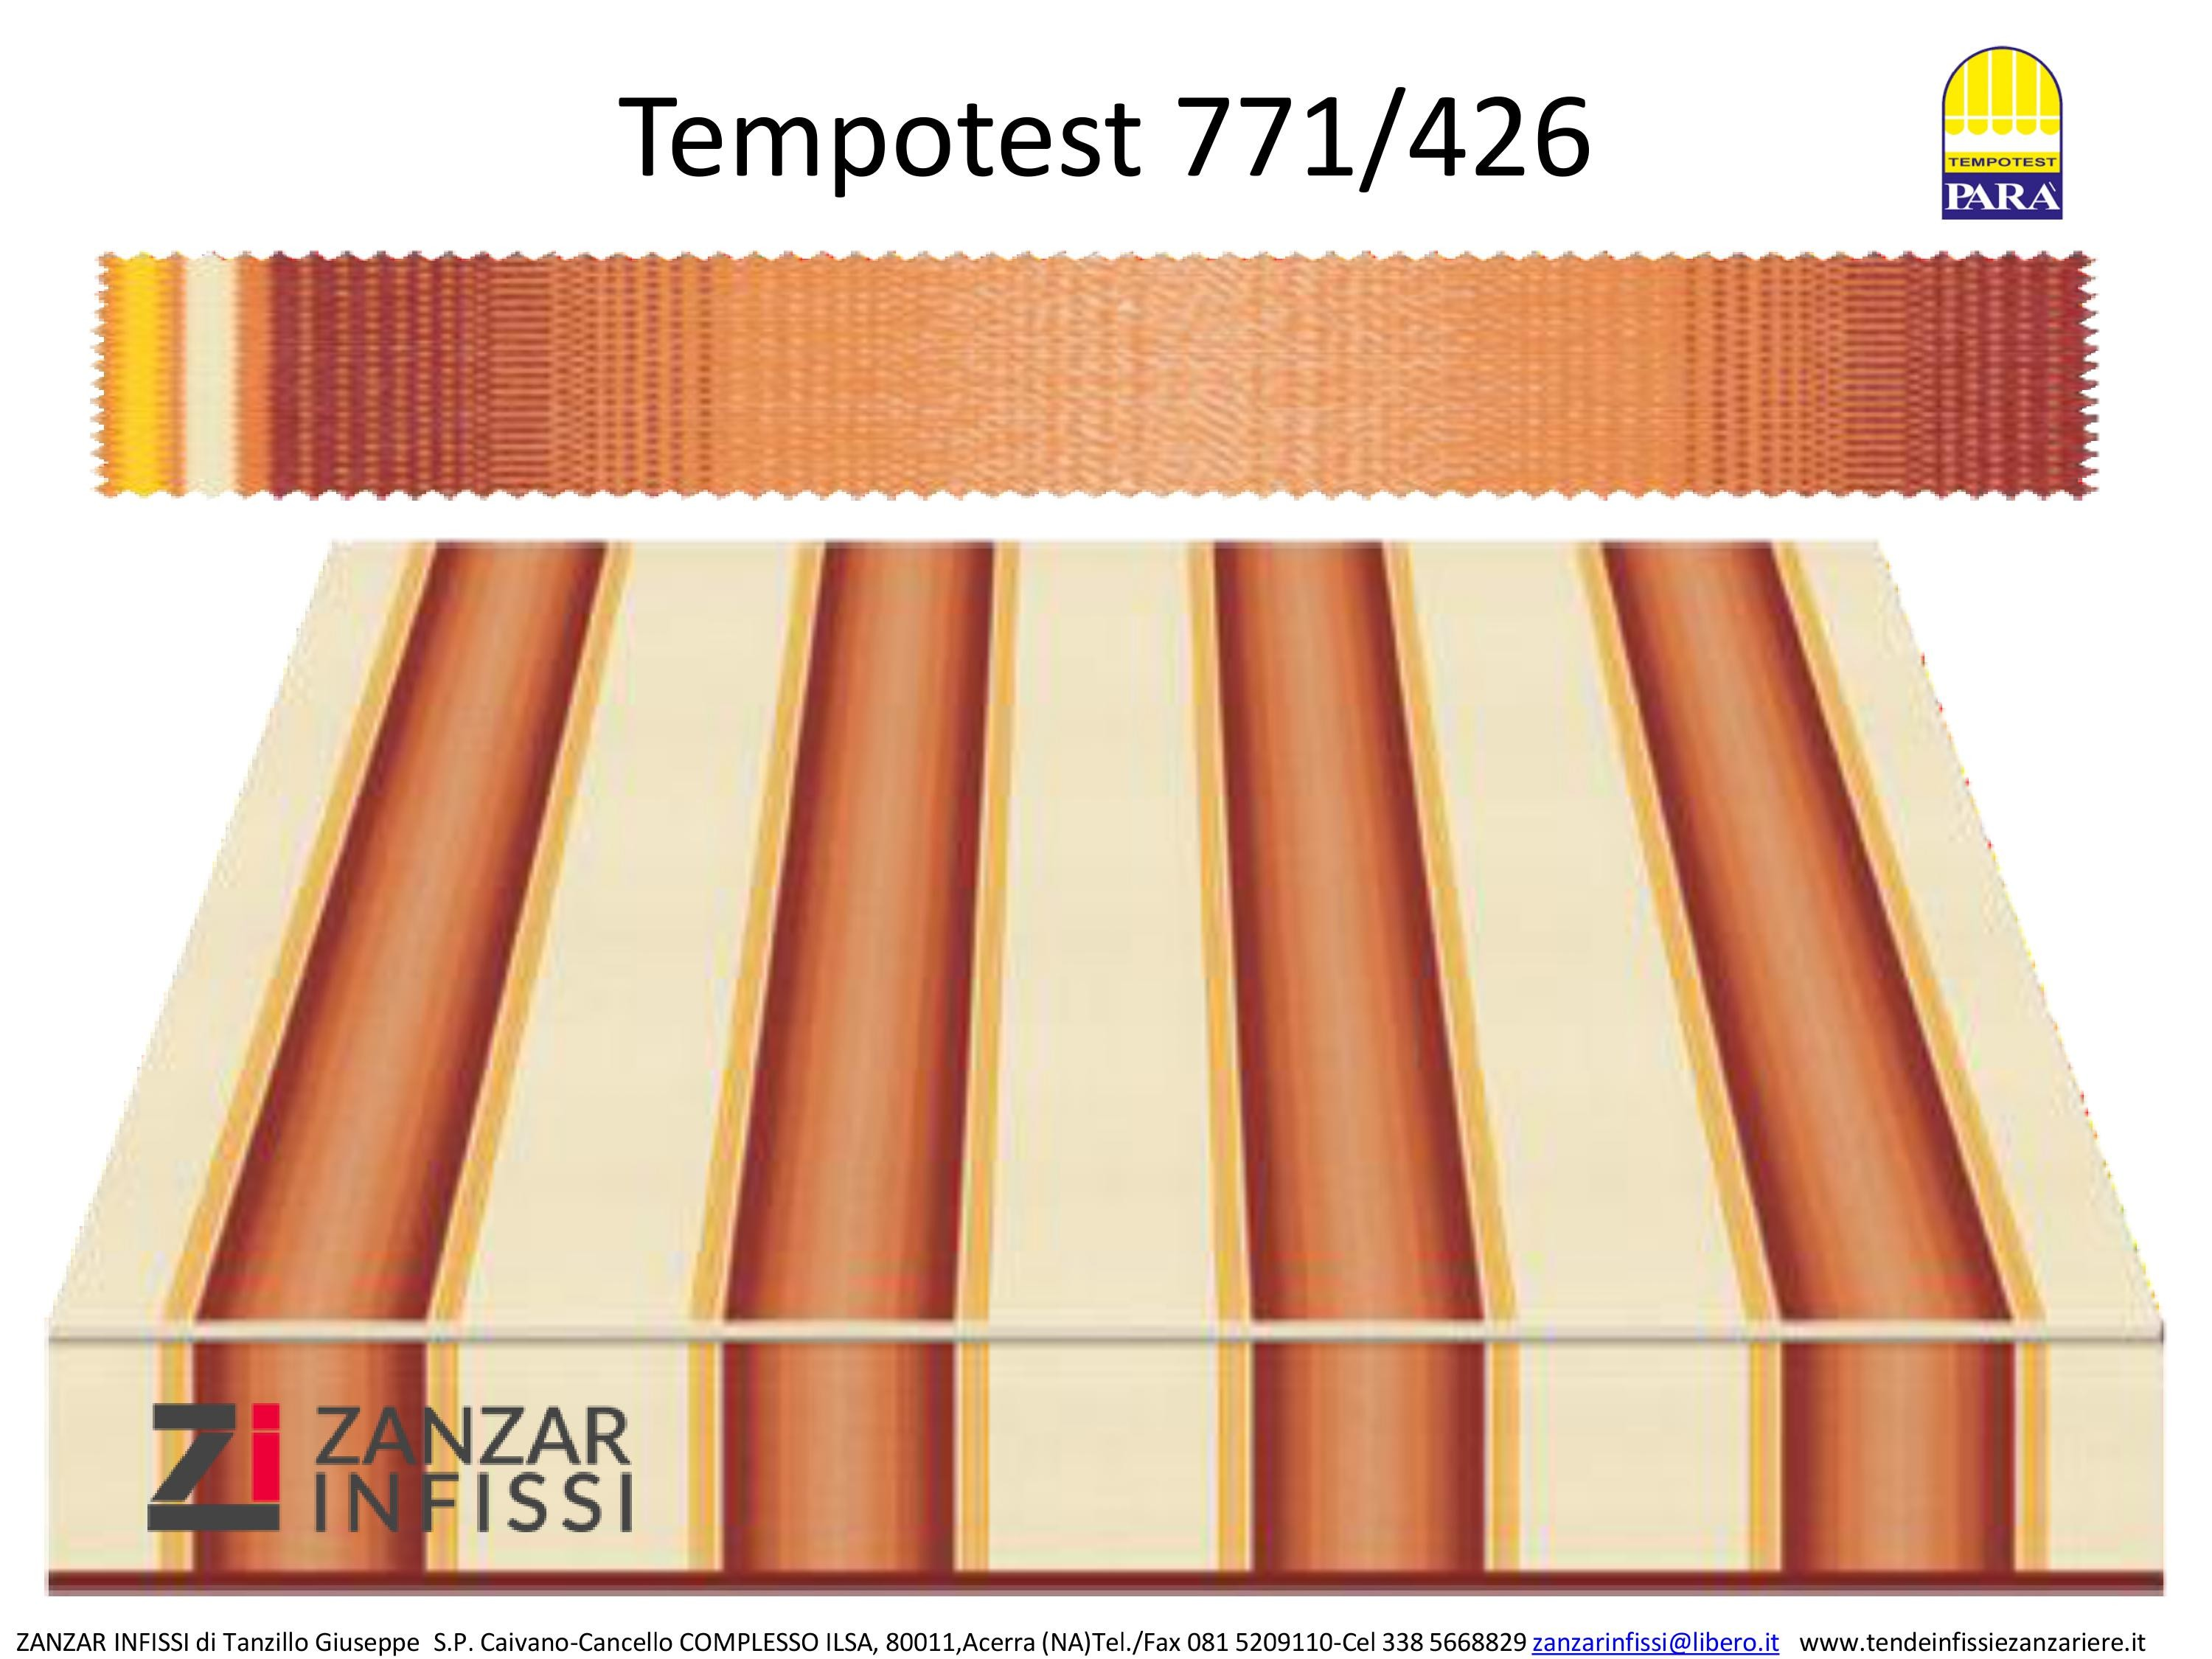 Tempotest 771/426